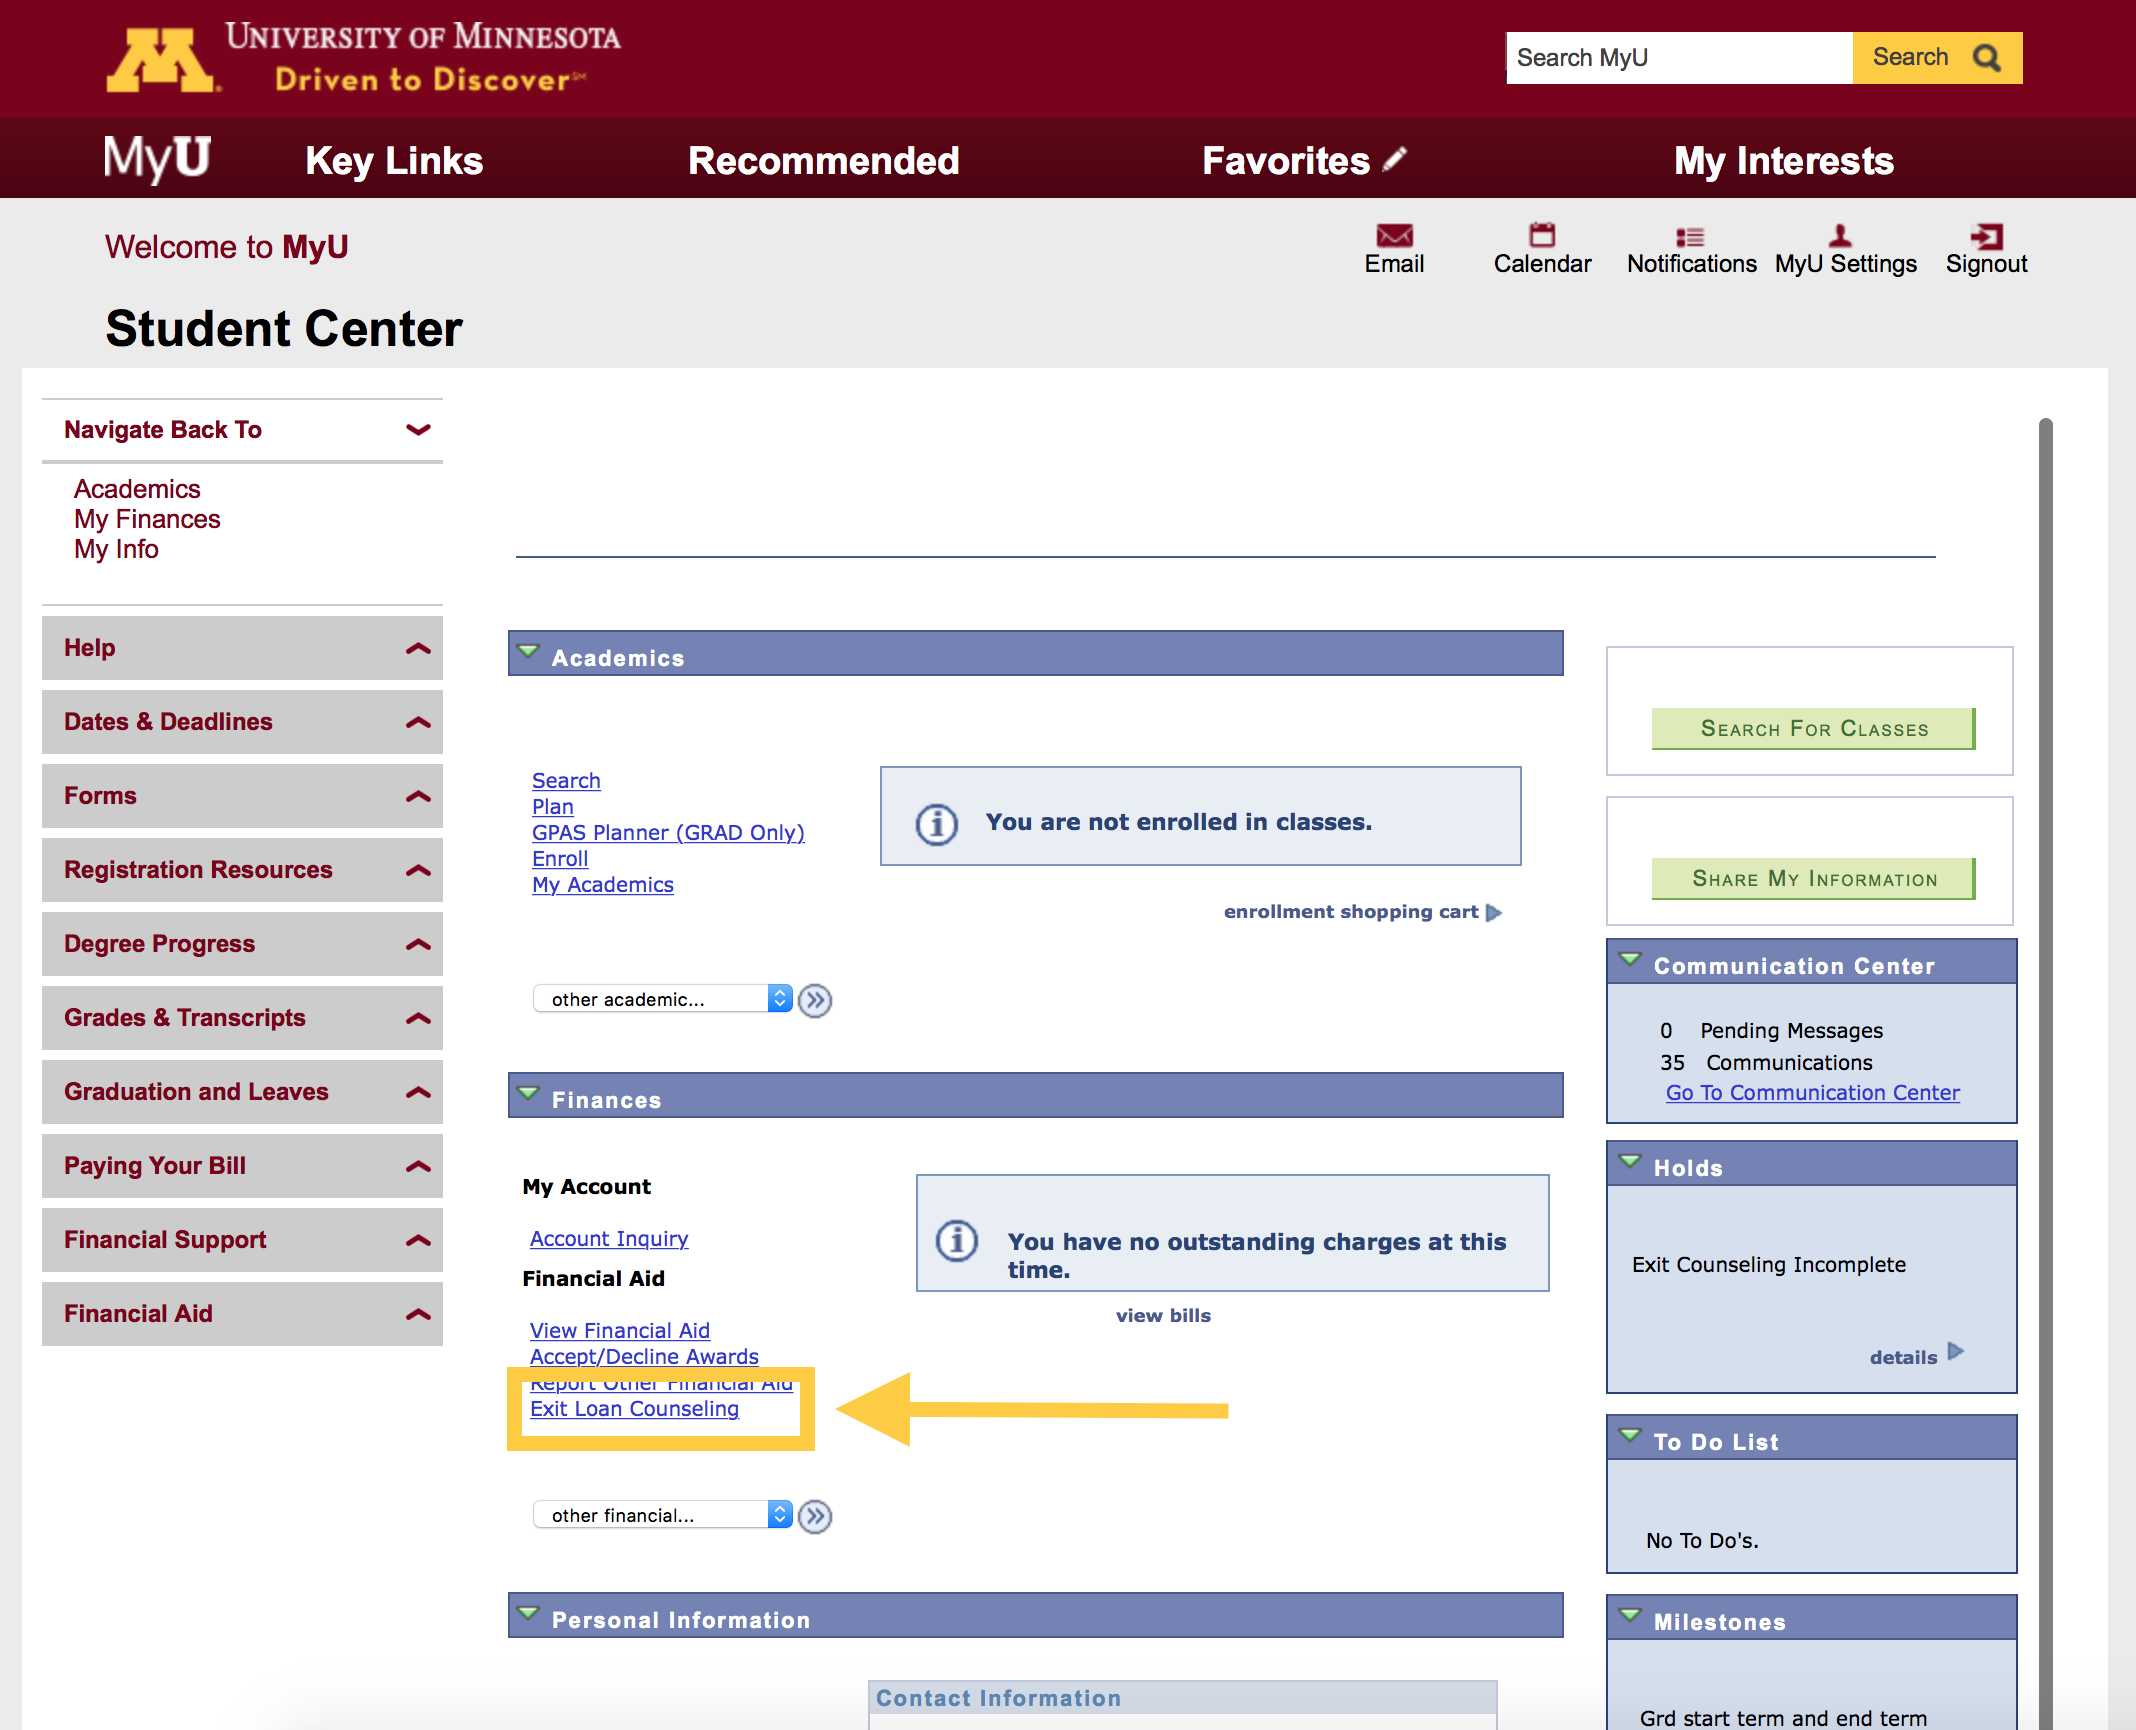 The link to exit counseling will appear only when you are selected to complete it. It will be in the student center within MyU in the finances section (in the middle of the page).